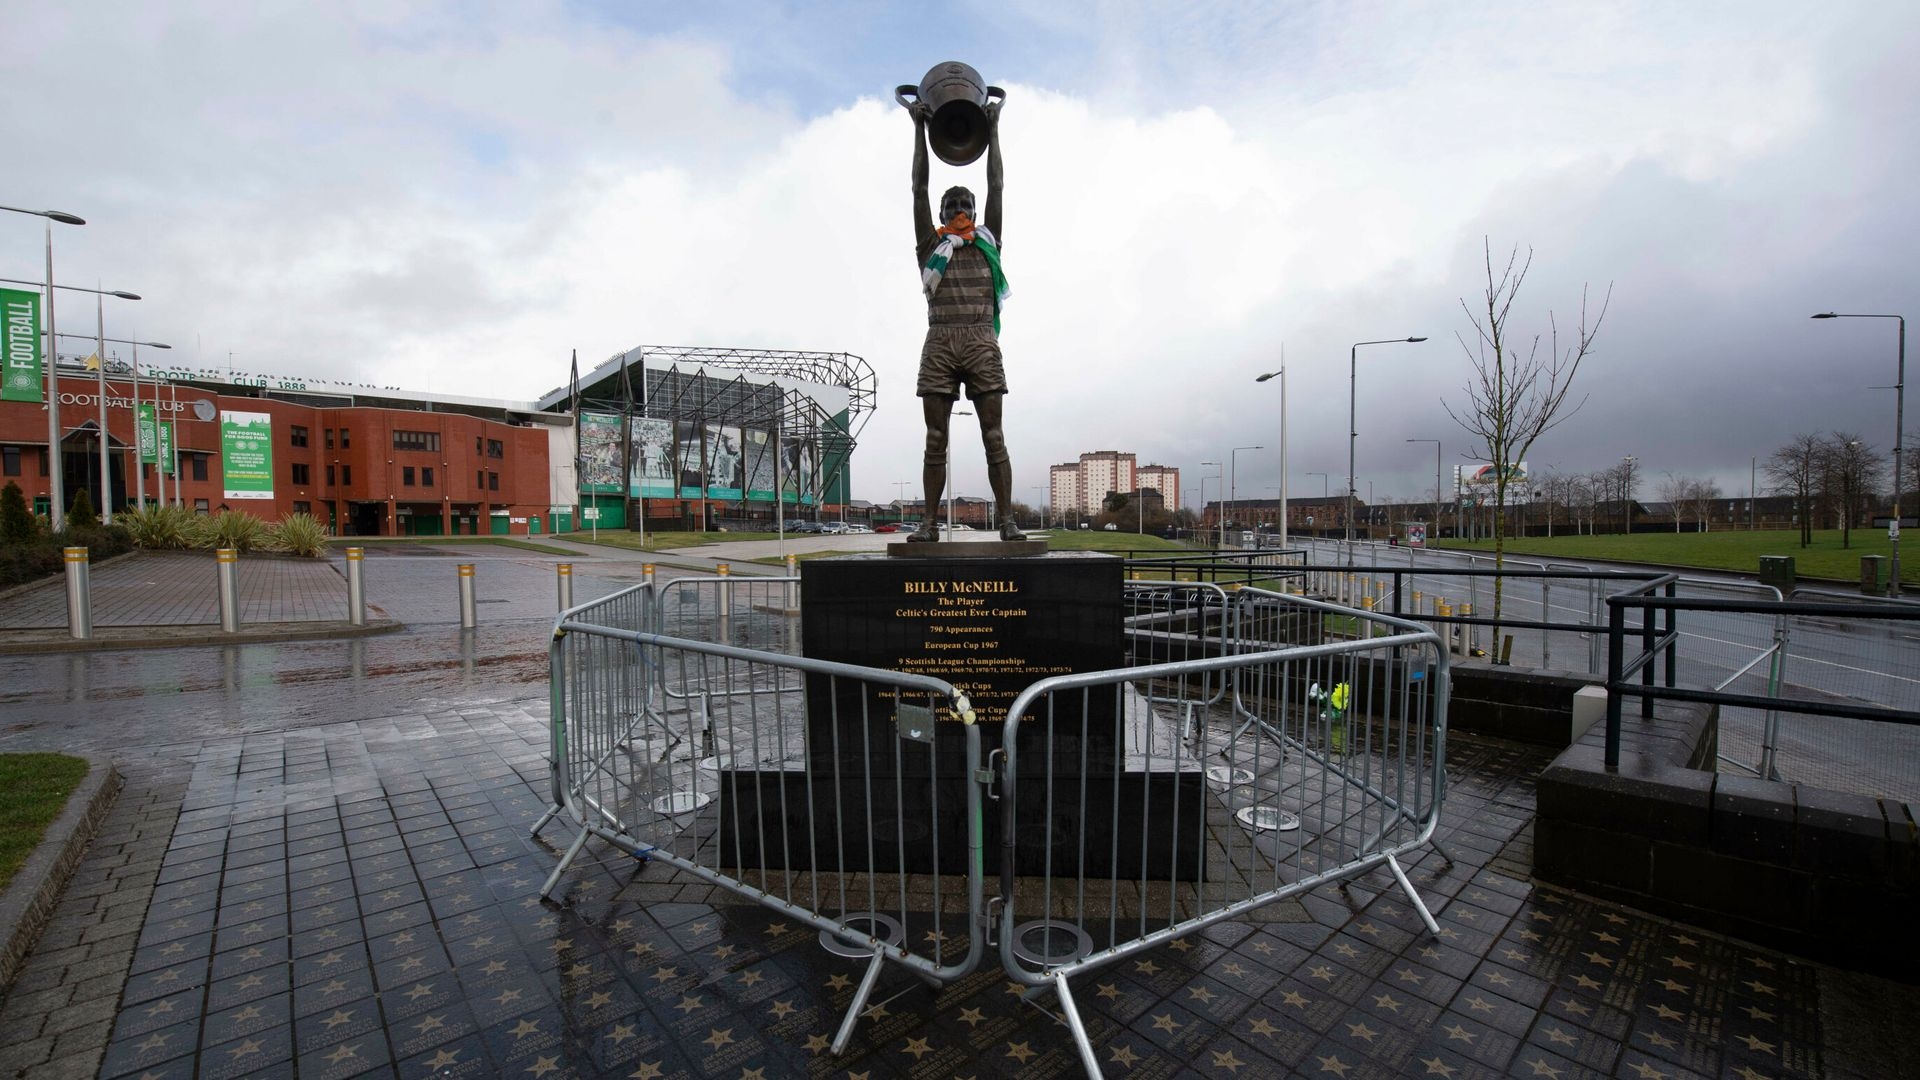 Celtic put fences up around stadium